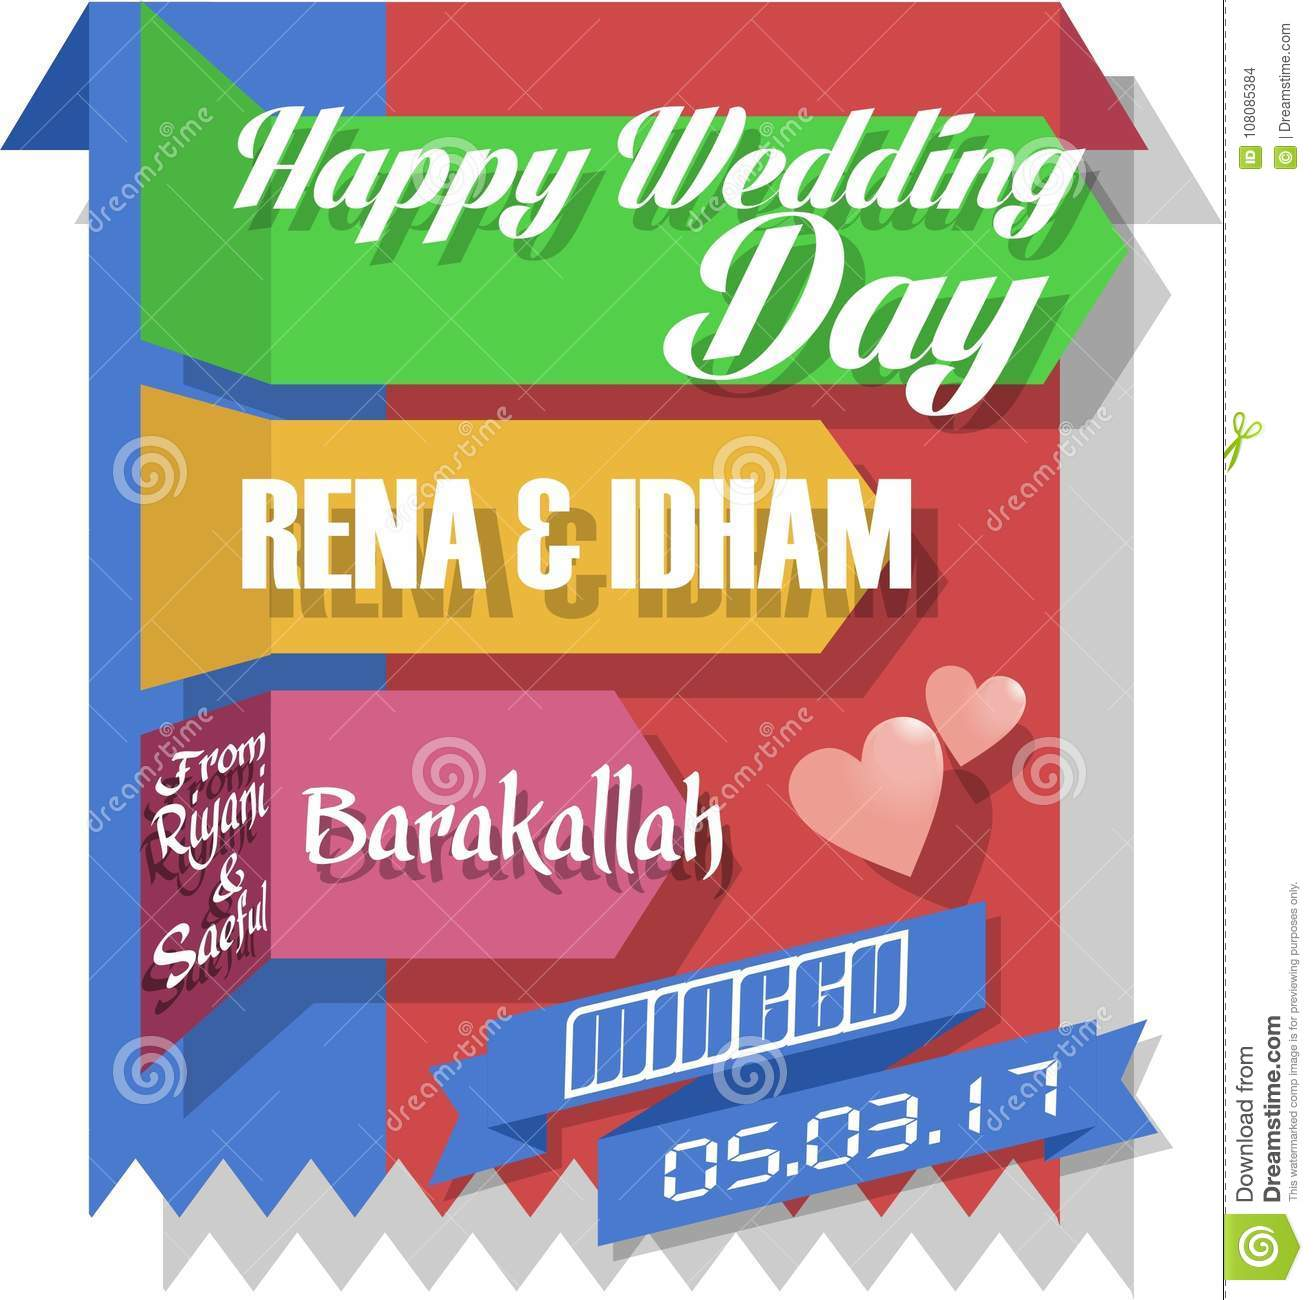 Wedding Card For New Couple Stock Vector - Illustration of ...